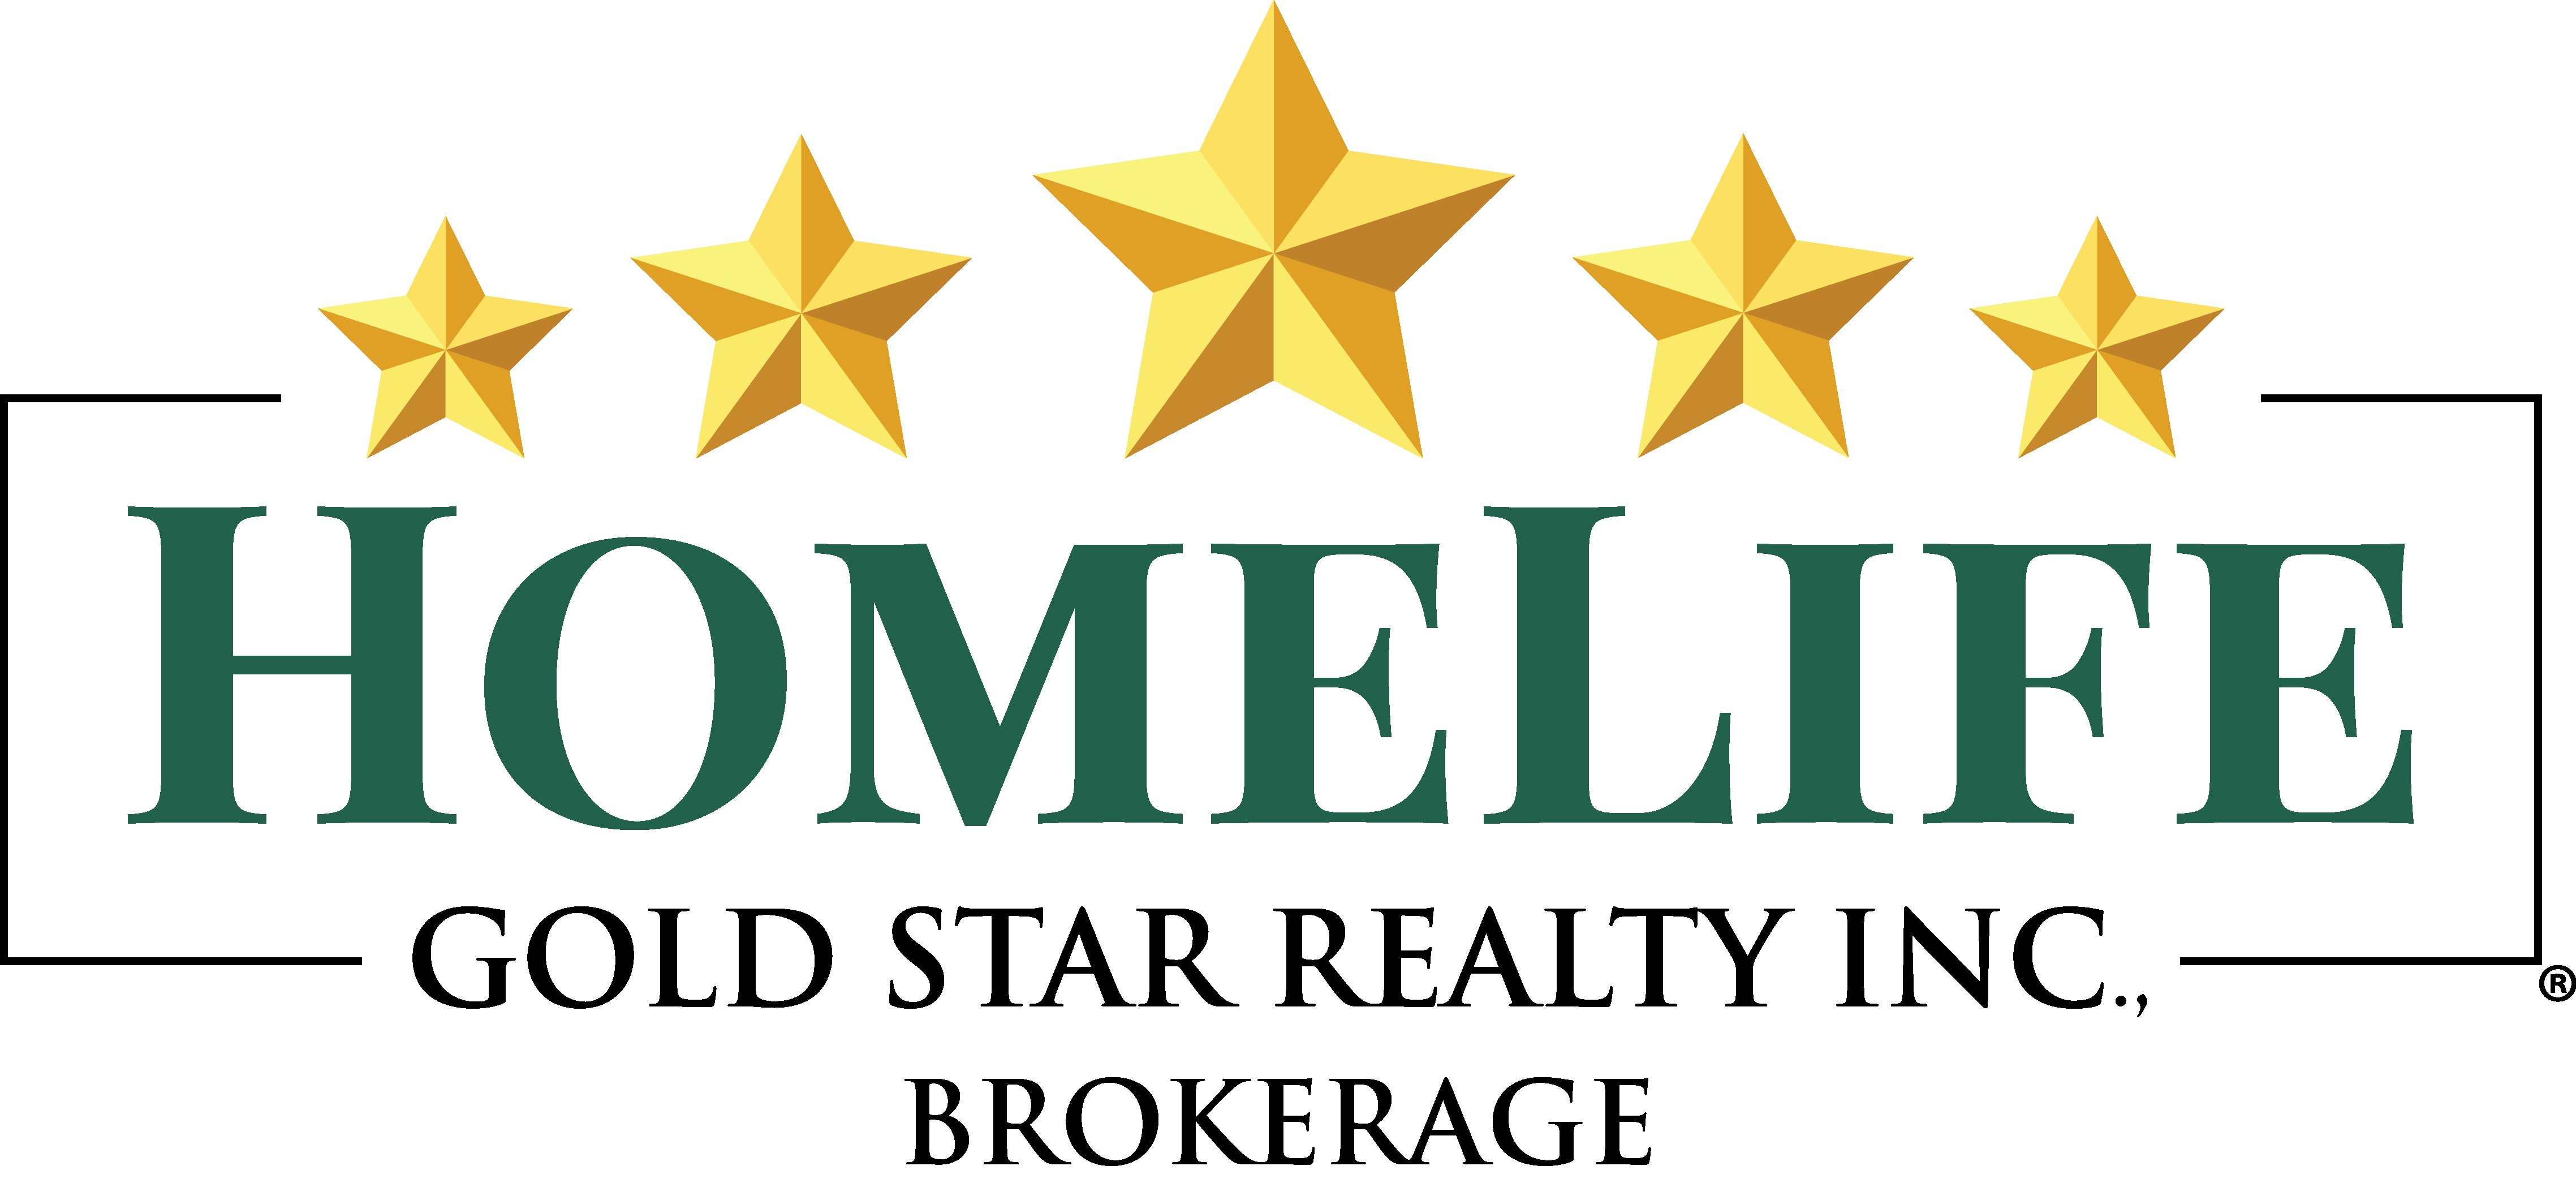 HOMELIFE GOLD STAR REALTY INC. Brokerage*